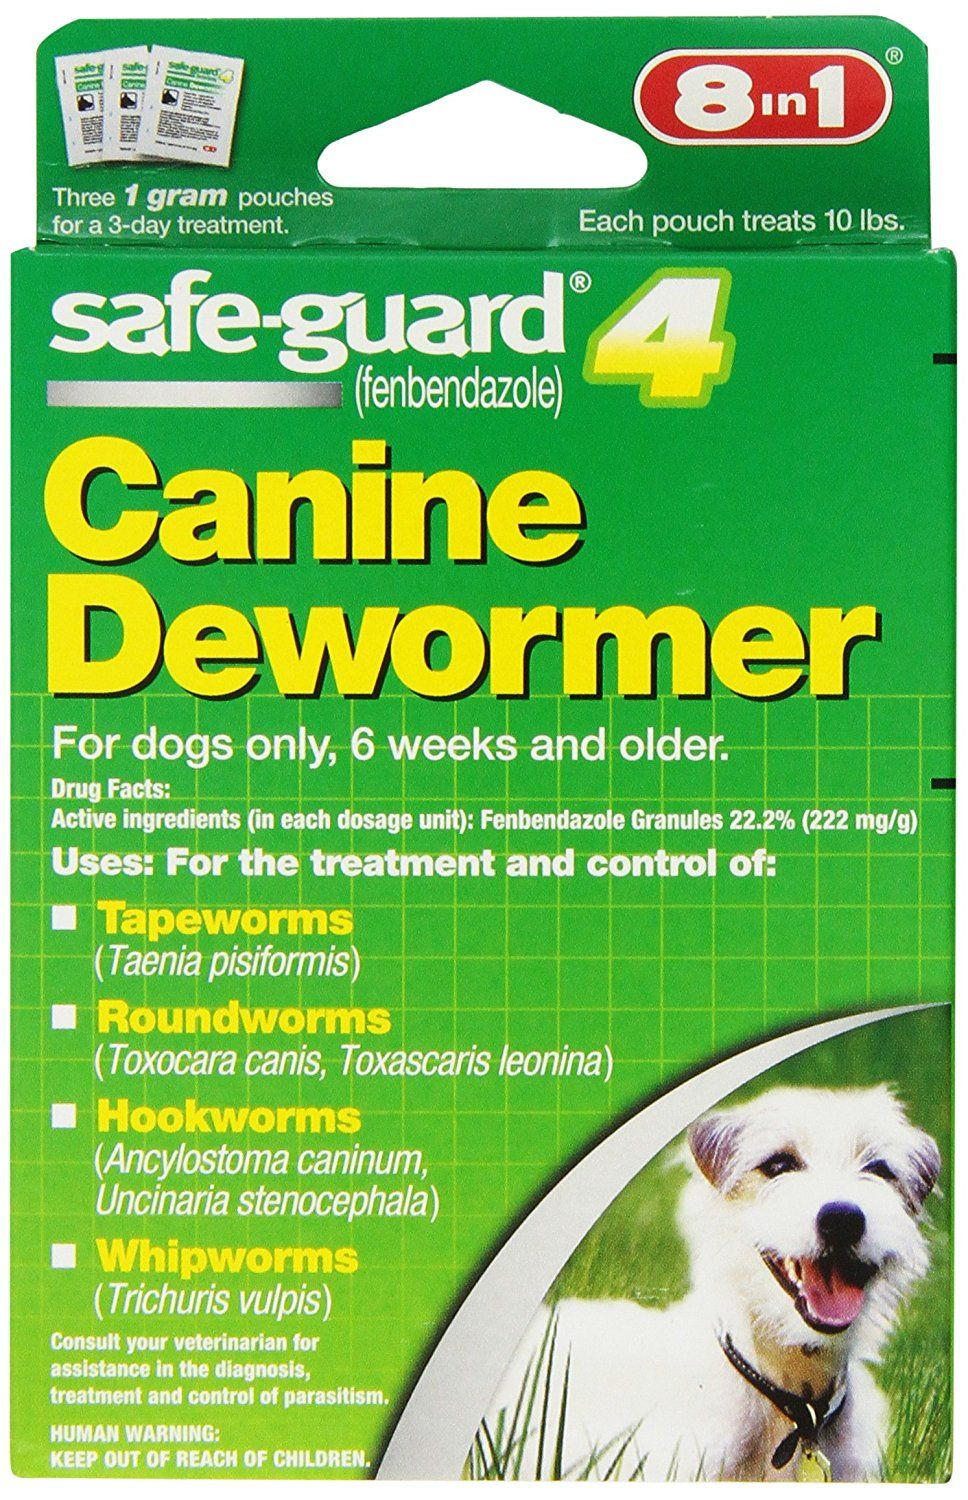 Amazon Com 8 In 1 Safe Guard Canine Dewormer For S Dogs 1 Gram Pet Wormers Pet Supplies Dogs Small Dogs Canine